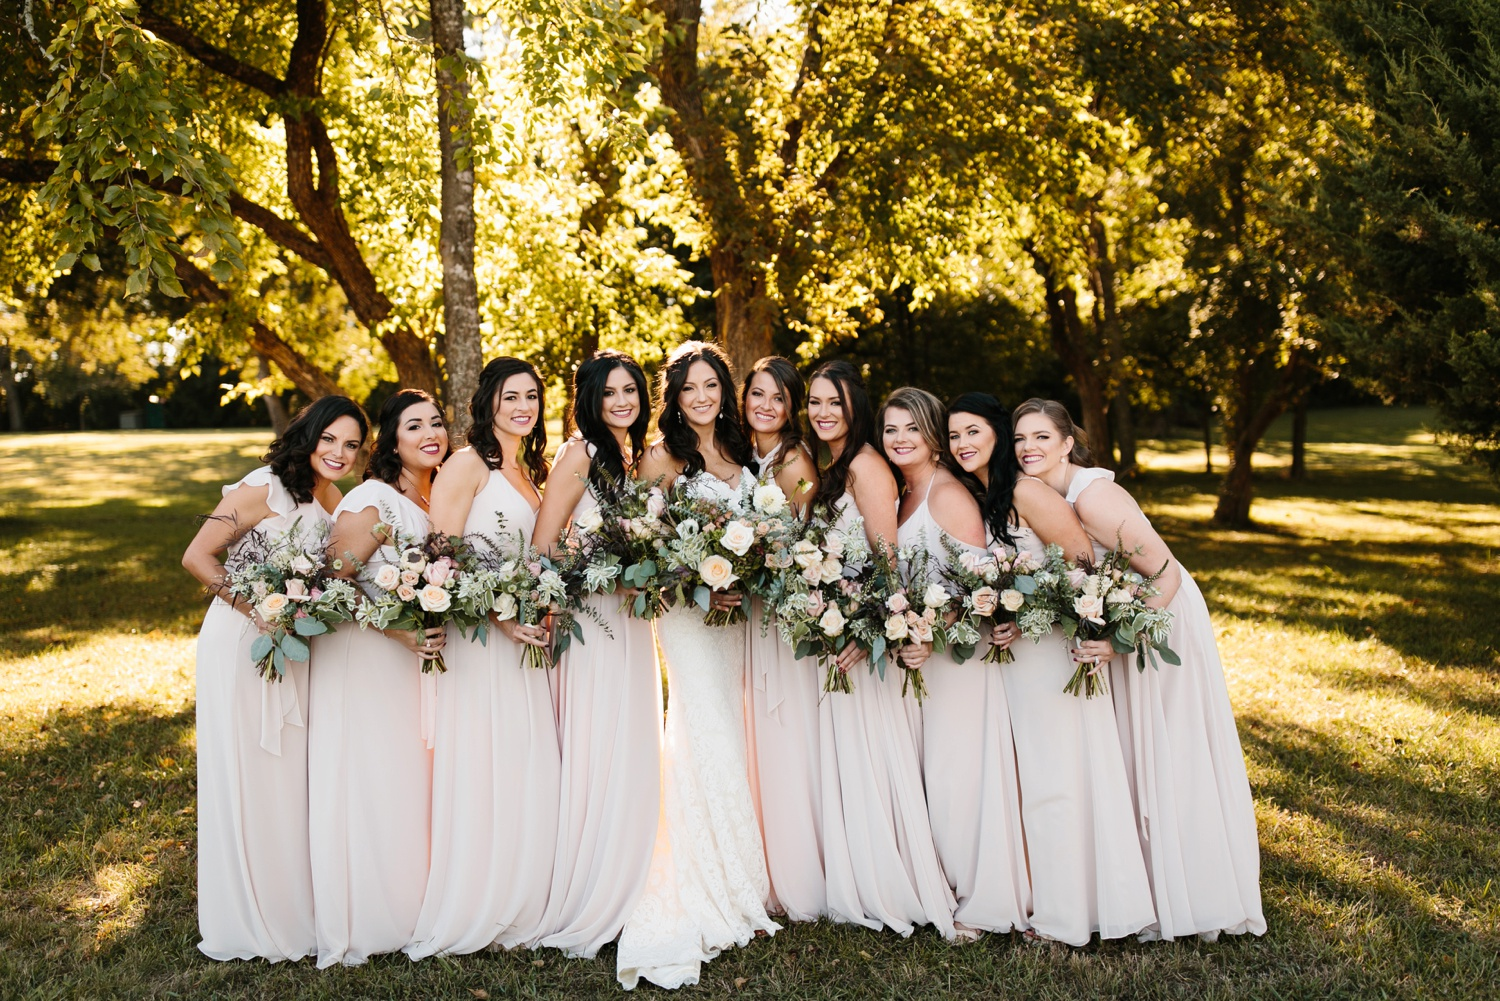 Erica + Henry | a bohemian inspired wedding at Chandlers Gardens in Salina, TX by North Texas Wedding Photographer Rachel Meagan Photography 051